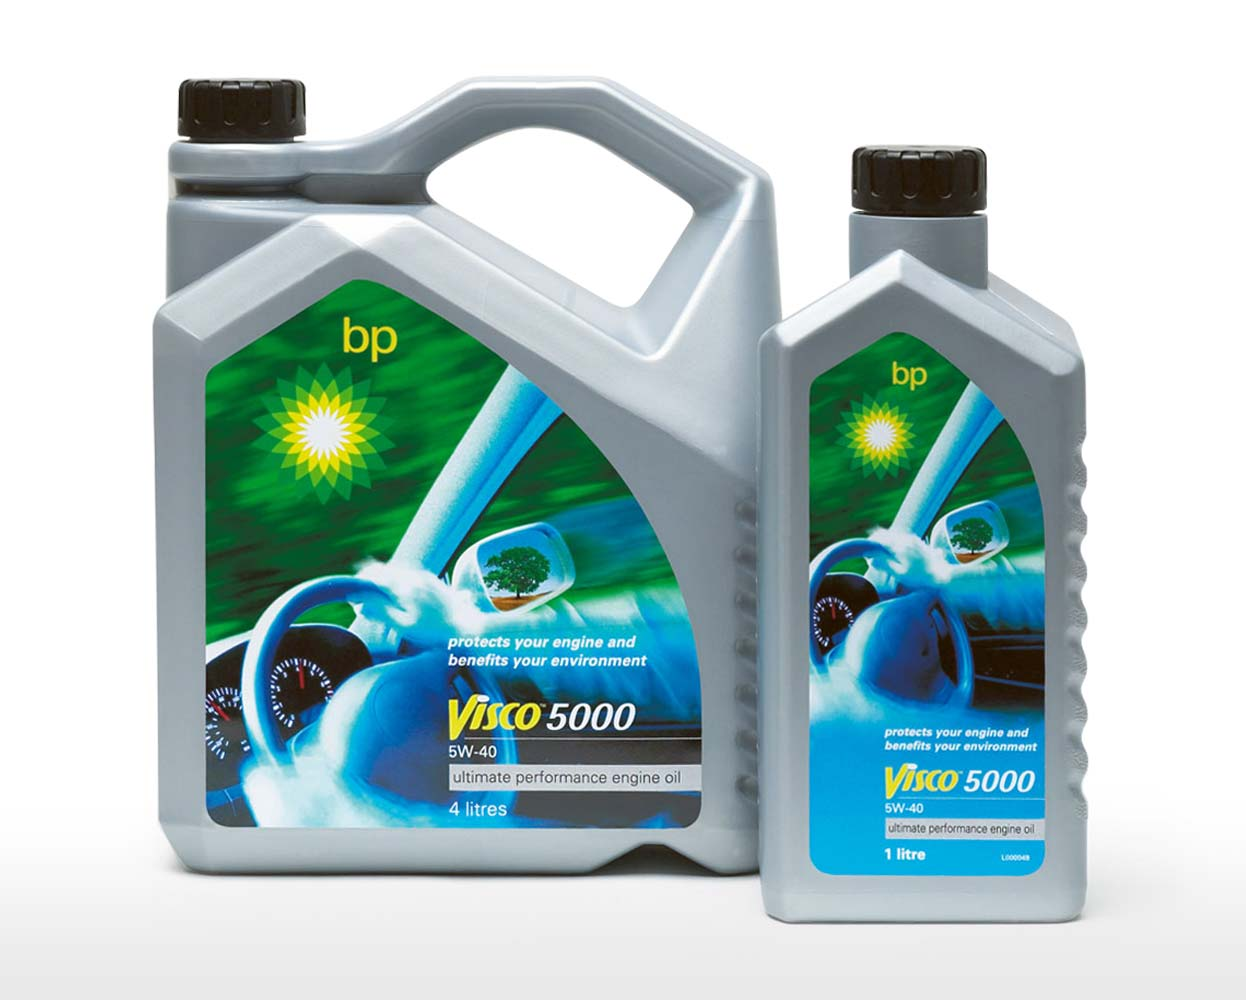 BP Packaging Visco 5000 Engine Oil Mela Creative